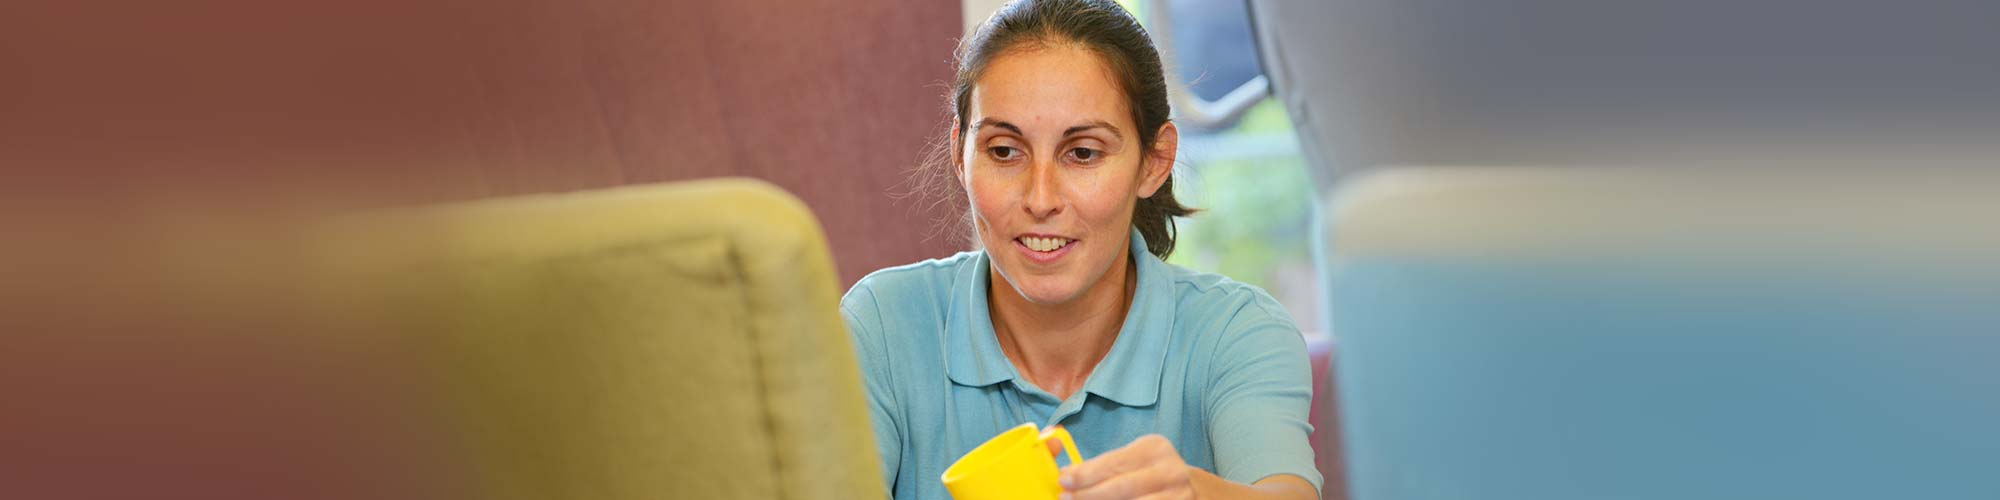 Cornerstone Carer offering a drink to resident